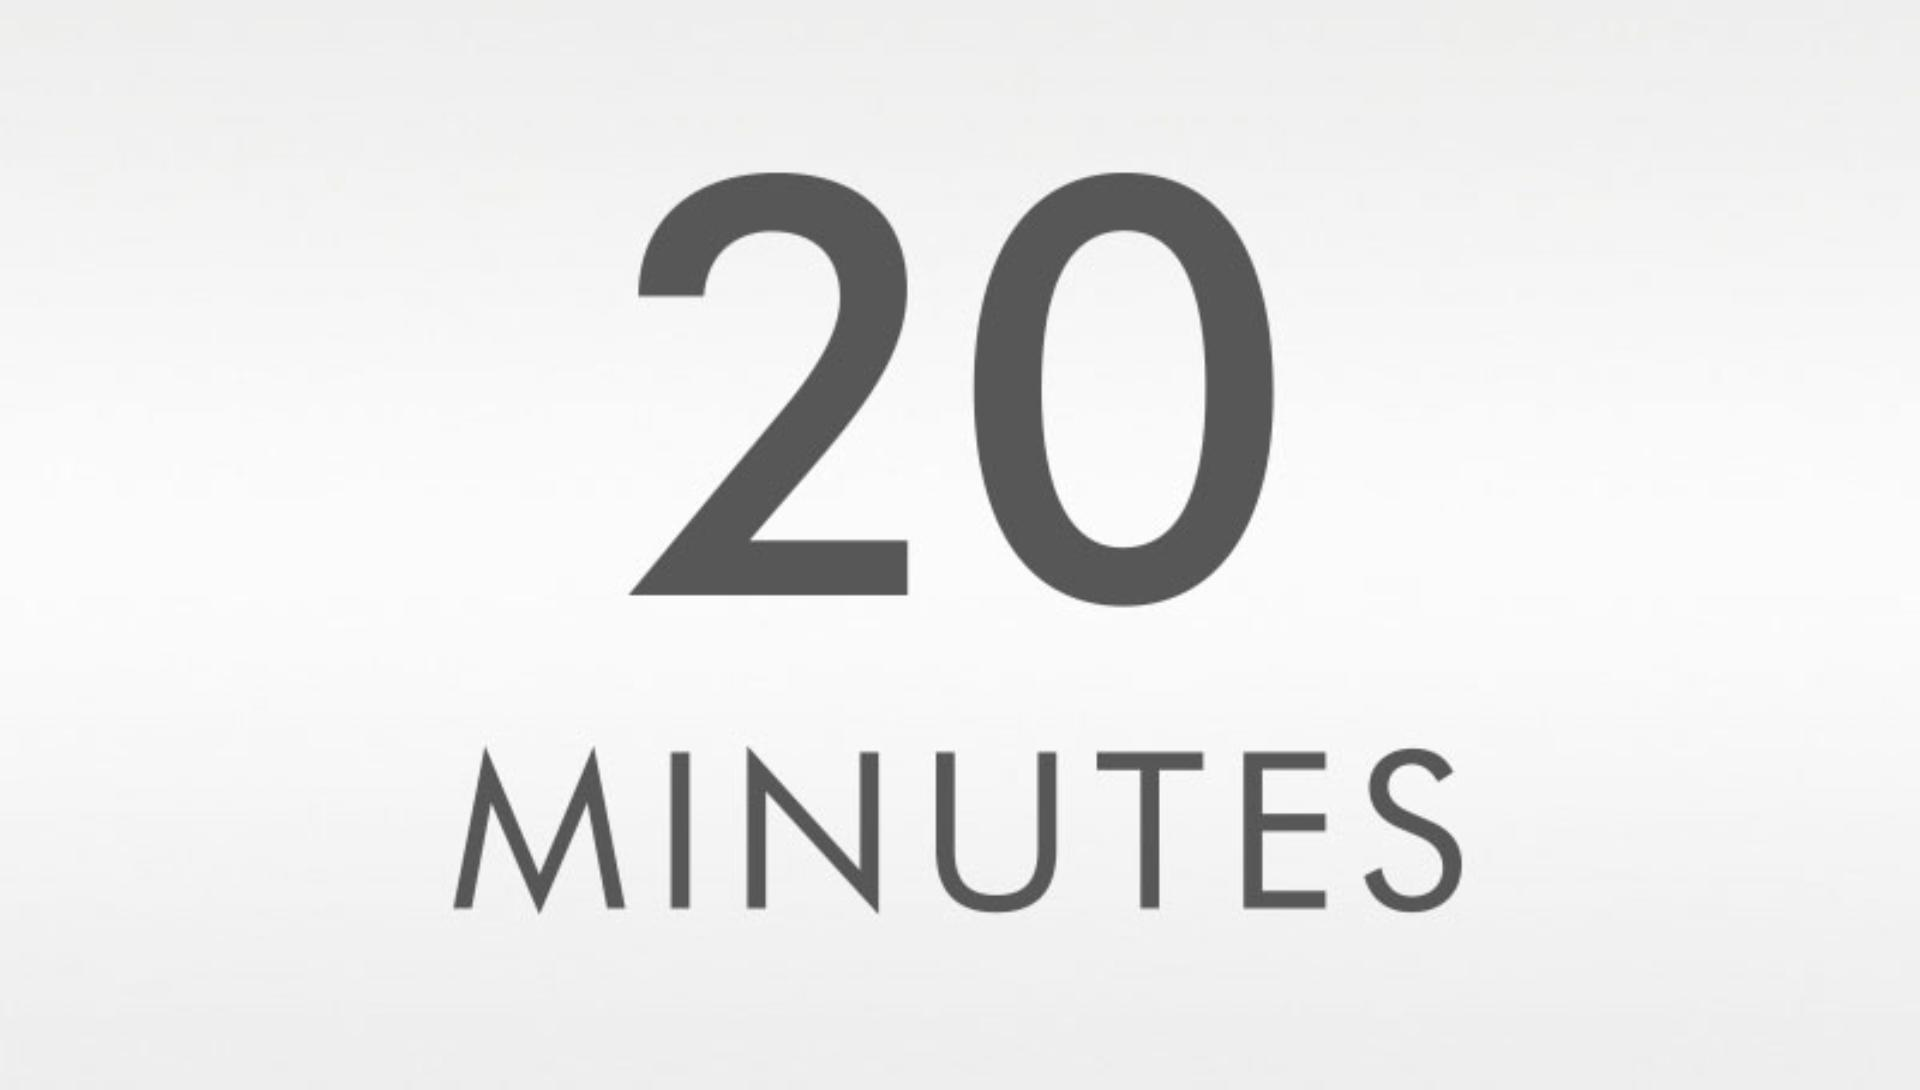 Graphic saying 20 minutes.